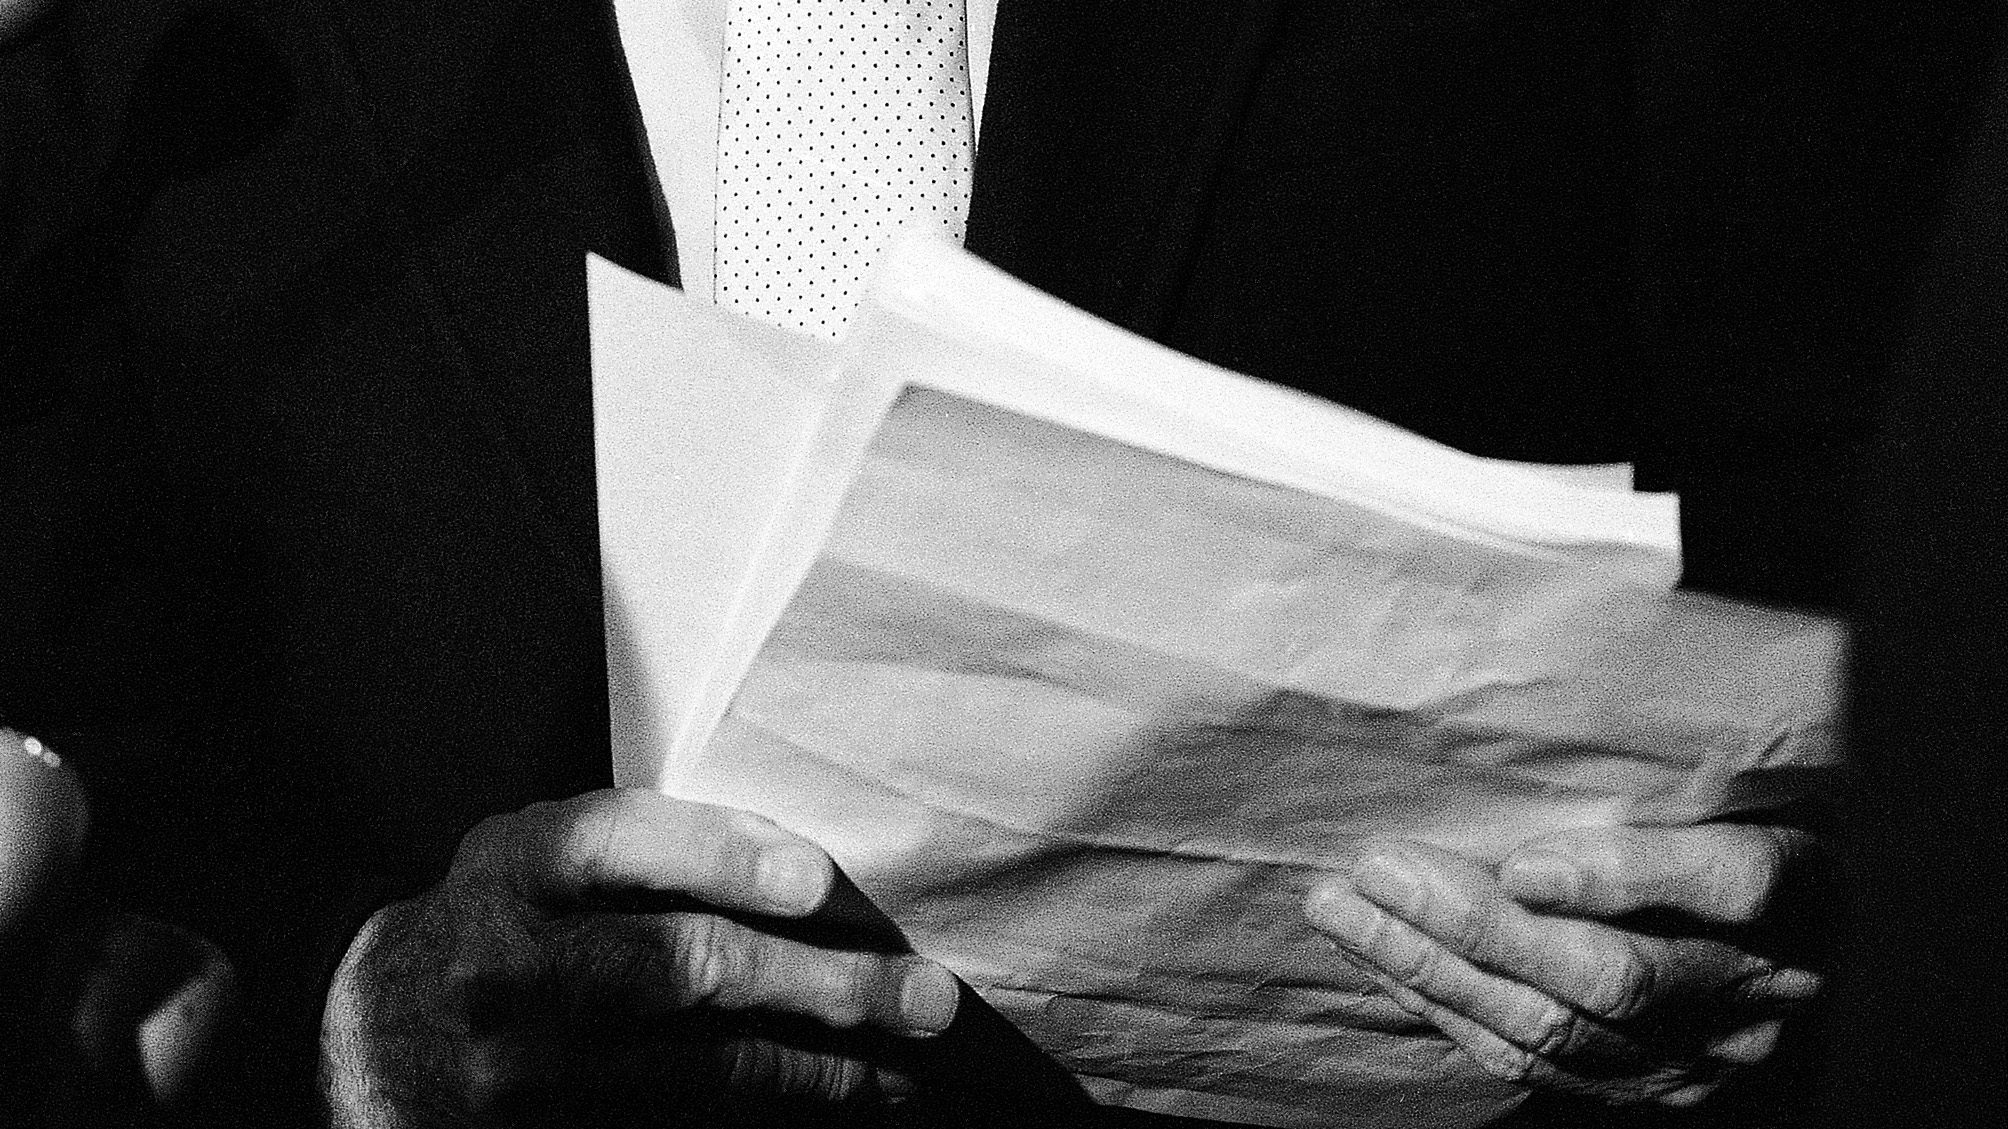 How to cope with a toxic boss, according to a US spy manual from WWII